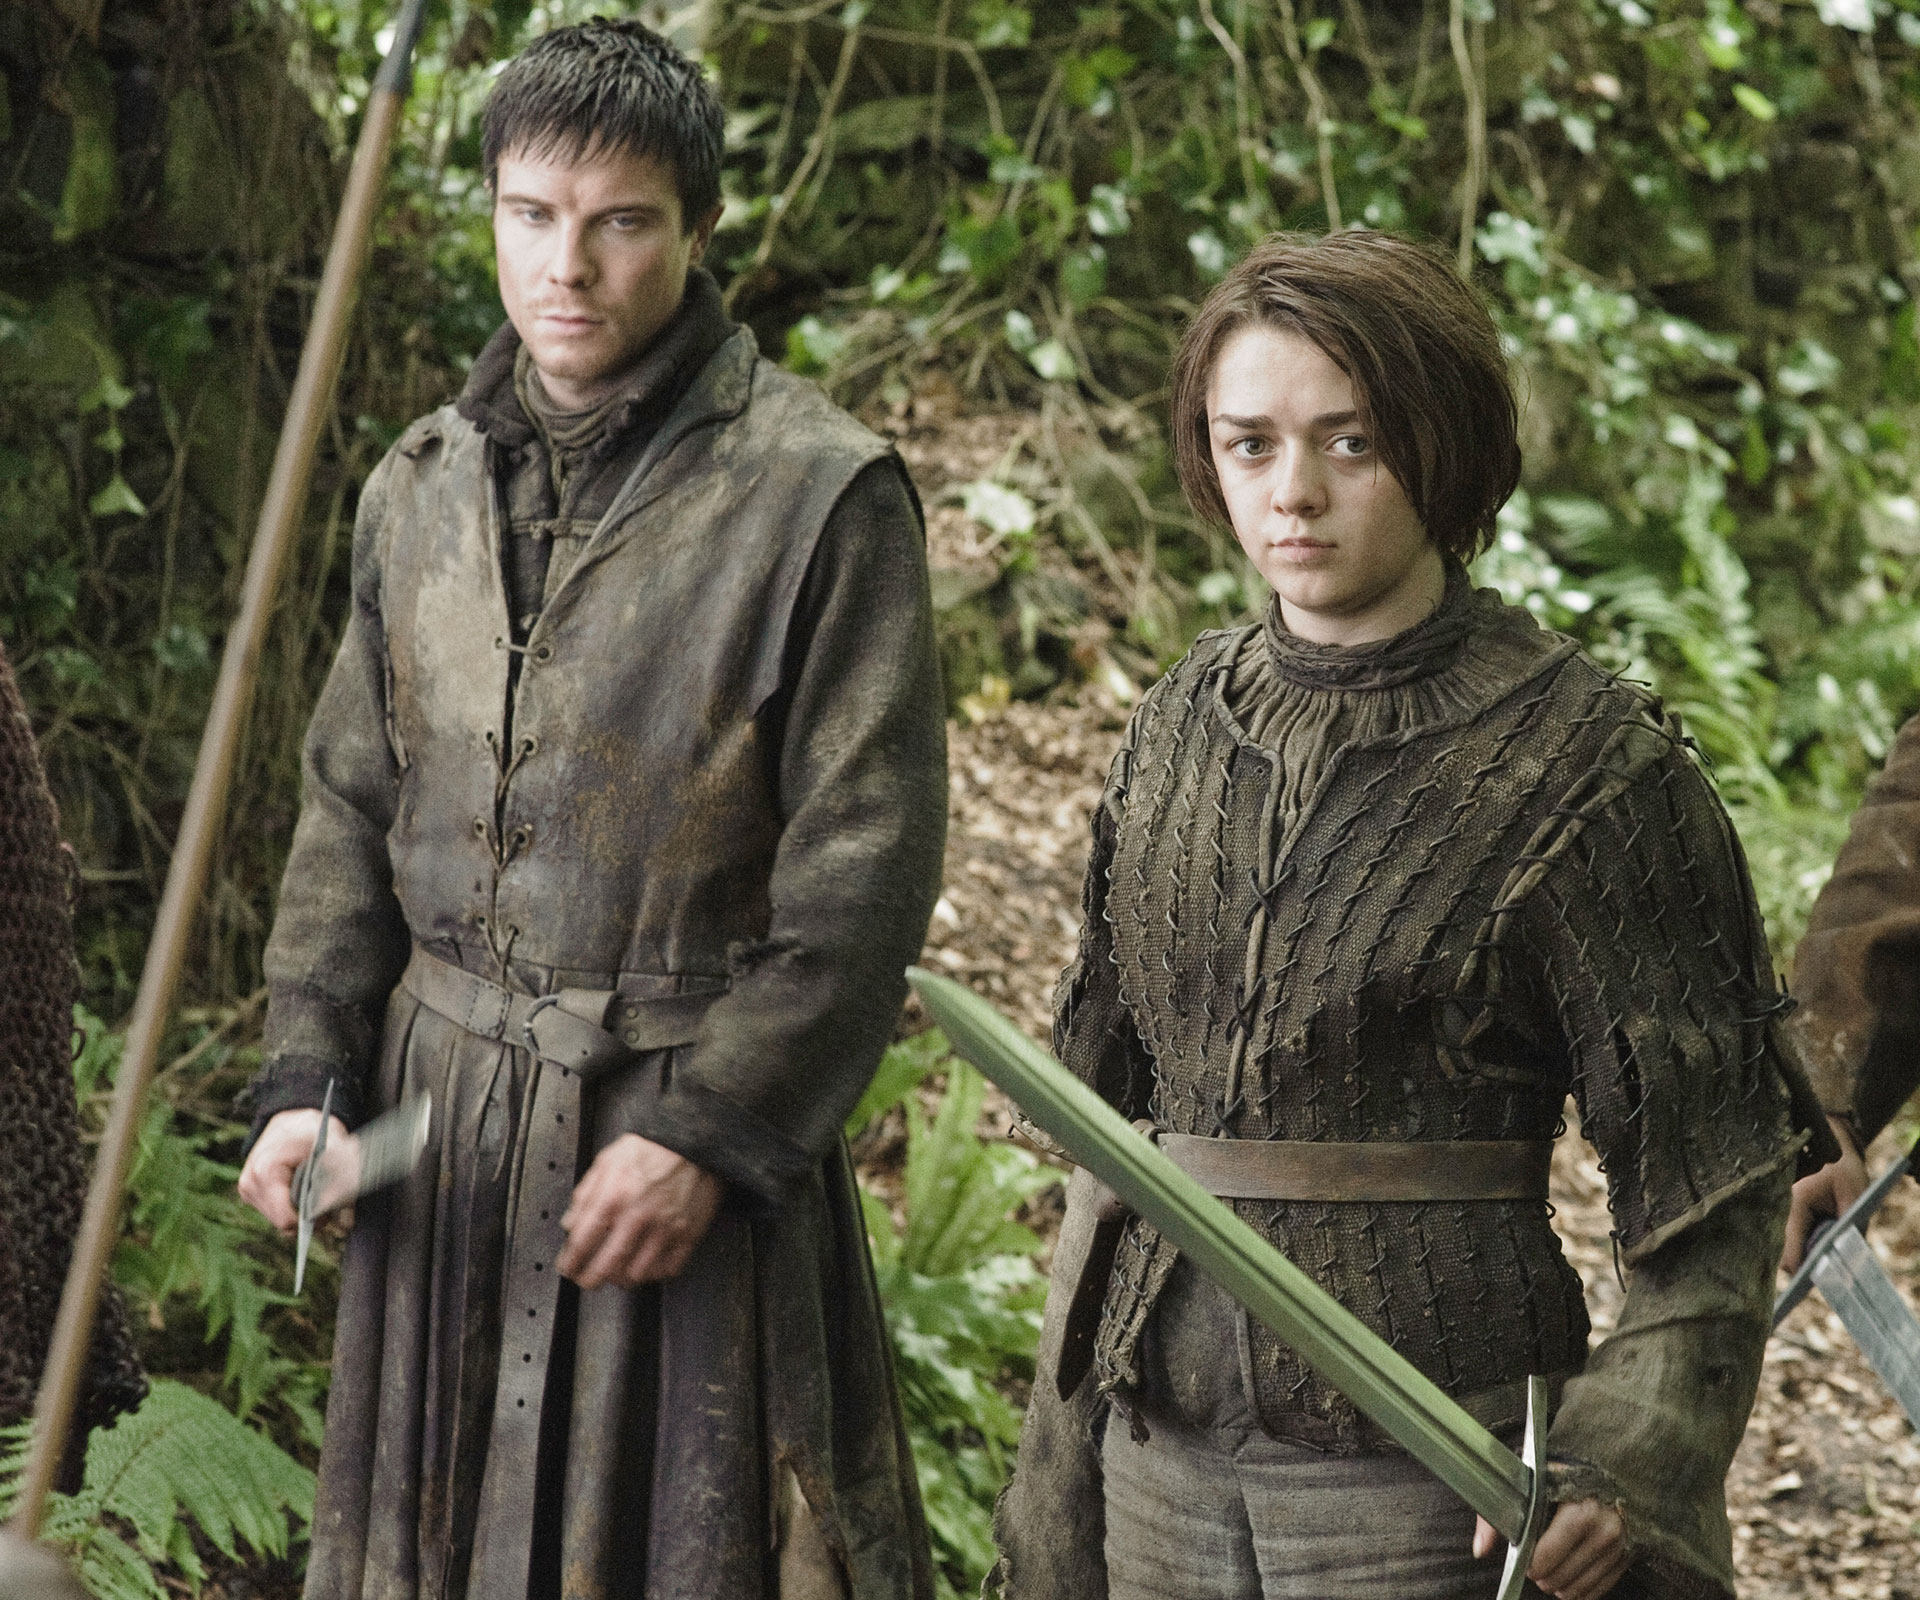 Harvard University Will Offer A Game Of Thrones-Themed Class